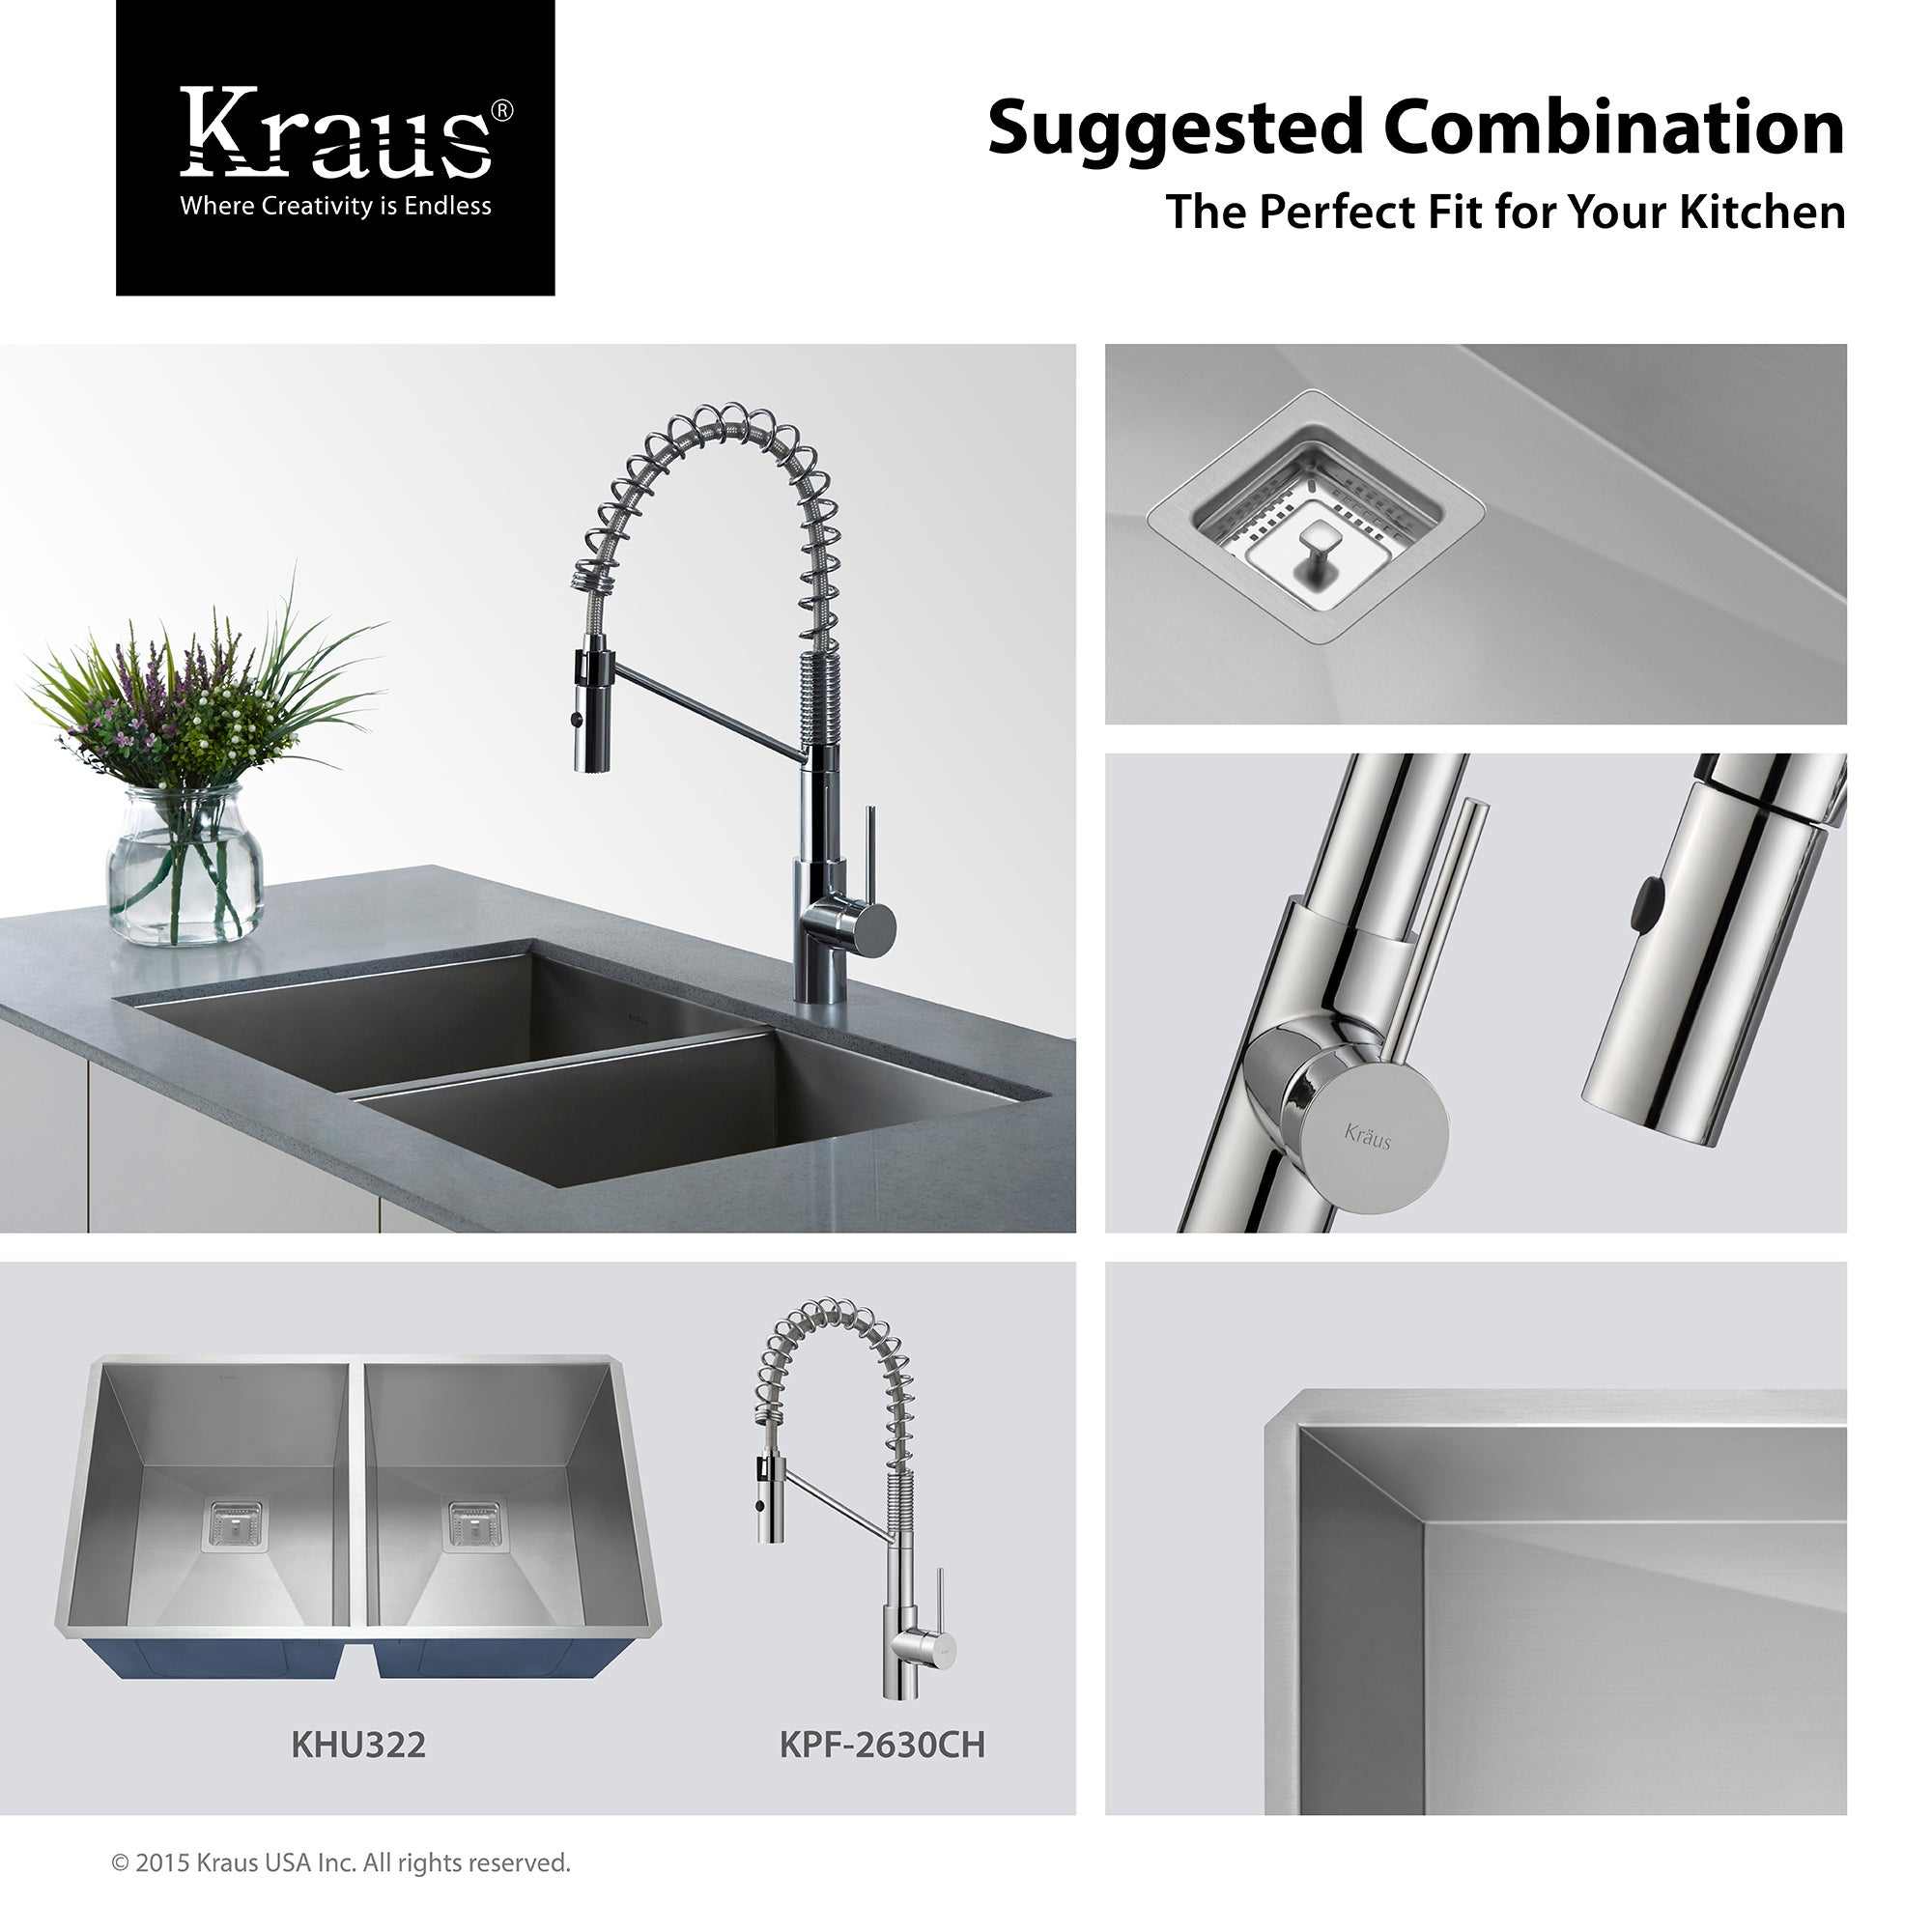 com kraususa kitchen kraus kpf single nola sprayer commercial faucet lever style